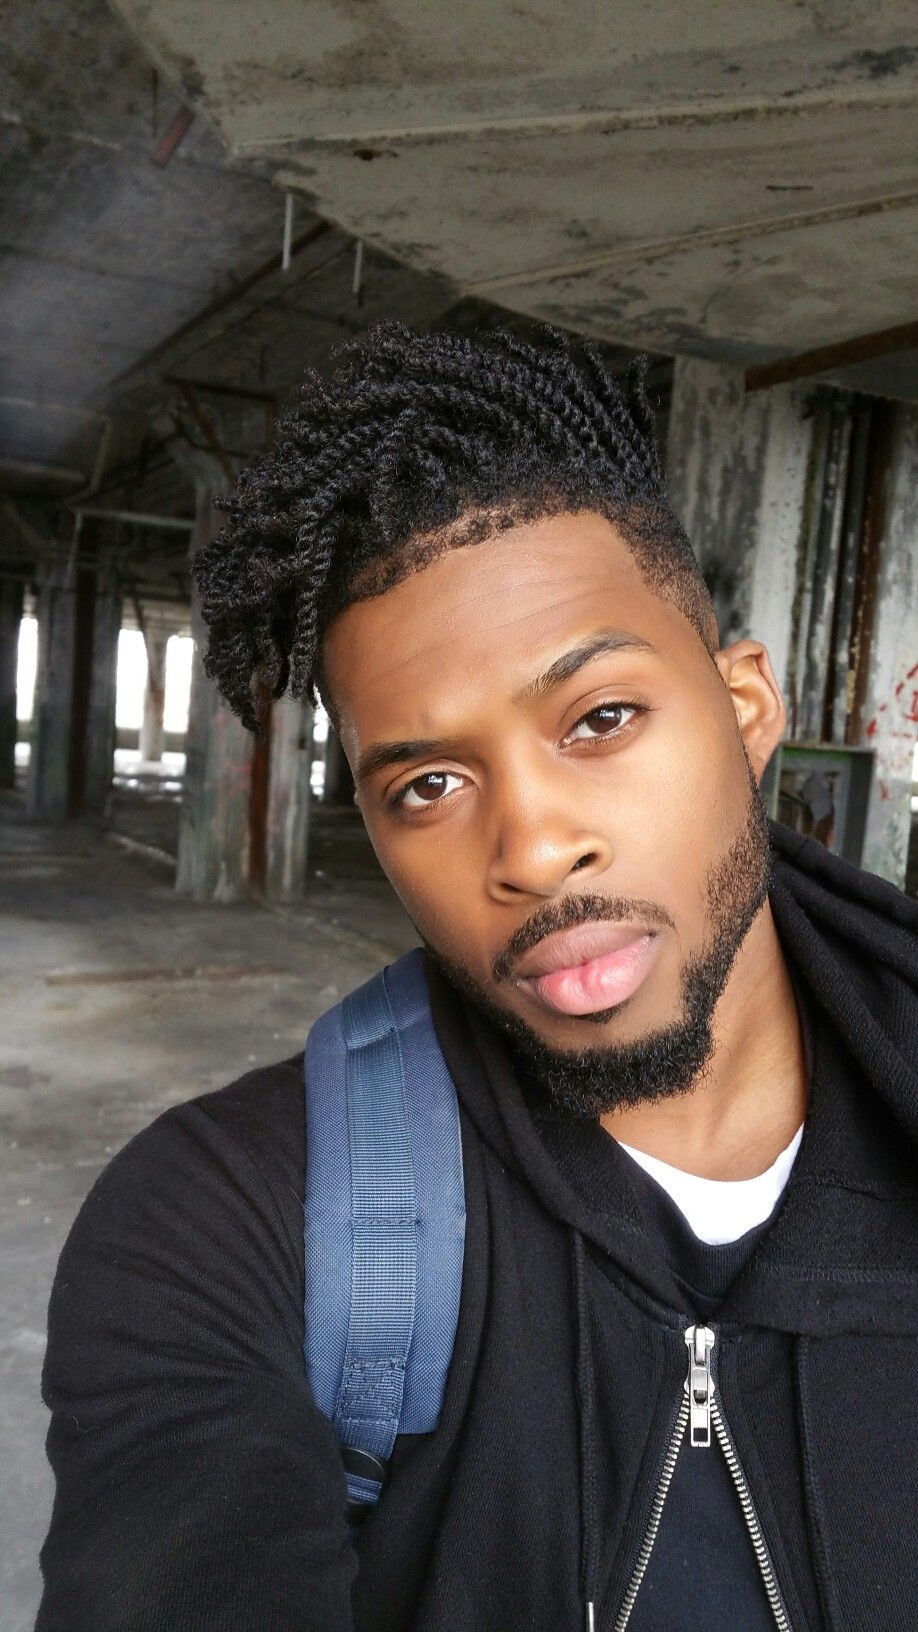 hairstyles that men find irresistible | black men hairstyle